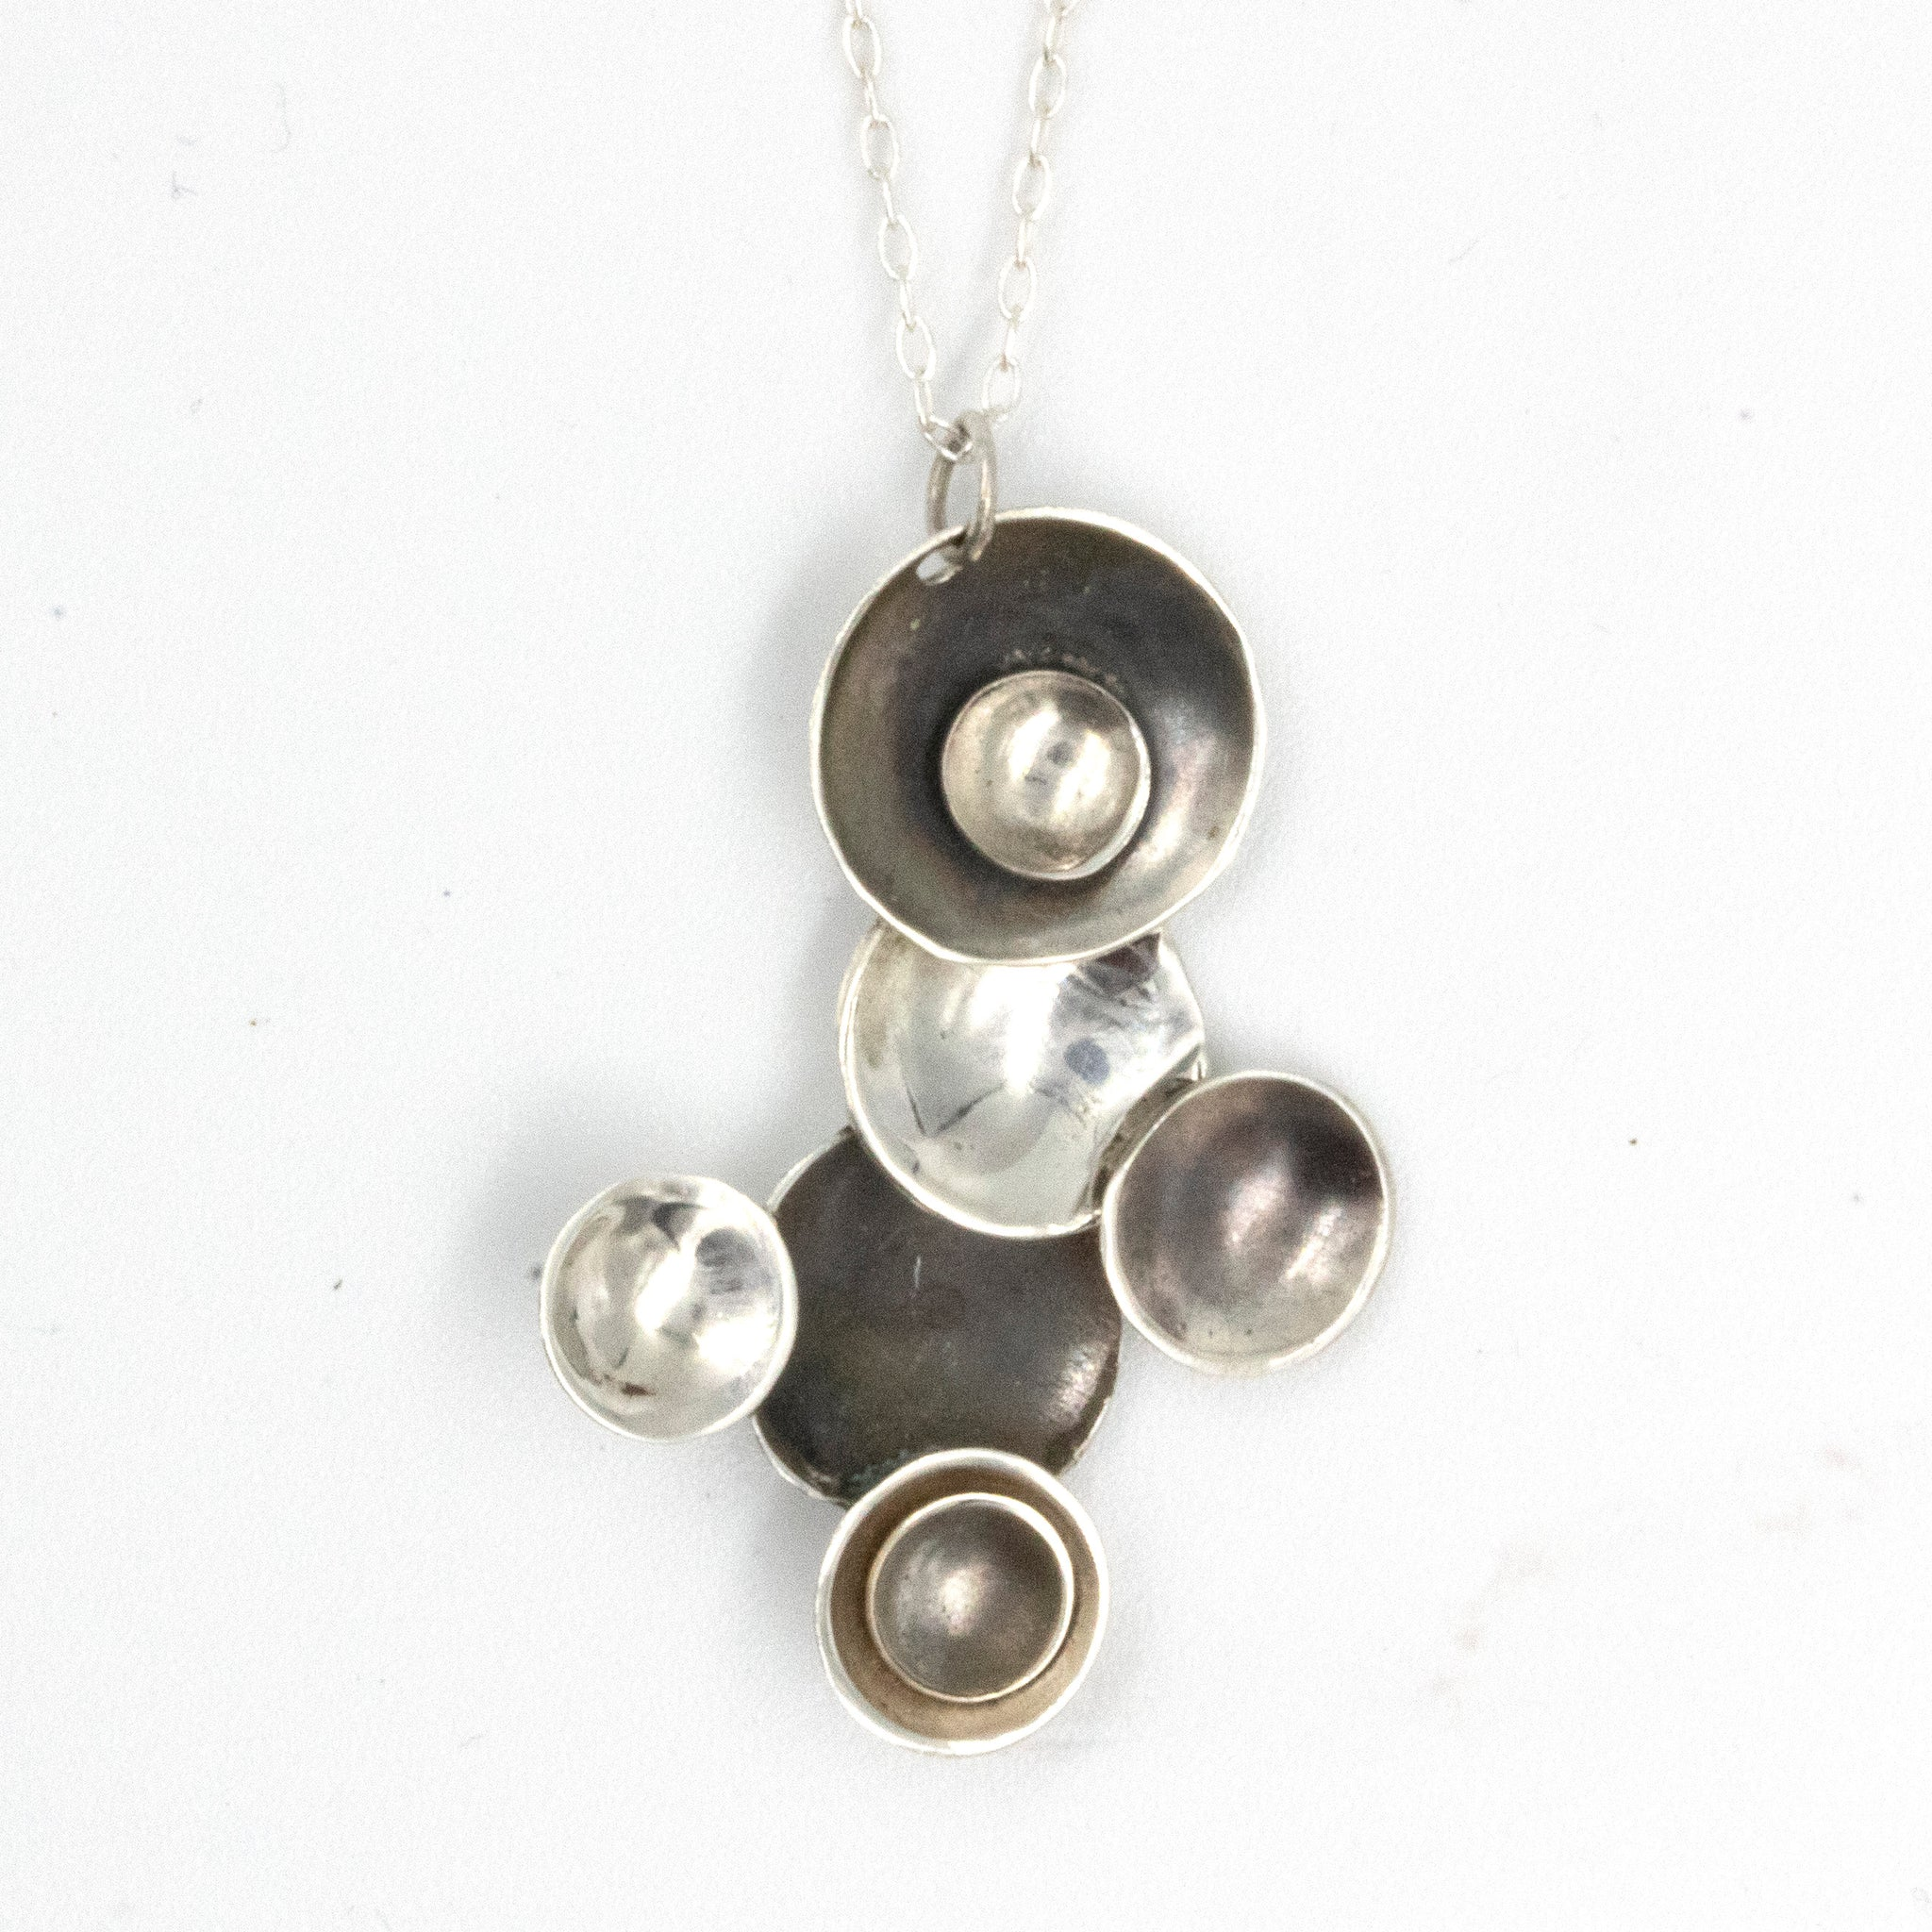 Handmade sterling silver 'Moons' necklace, by Gemma Tremayne Jewellery.